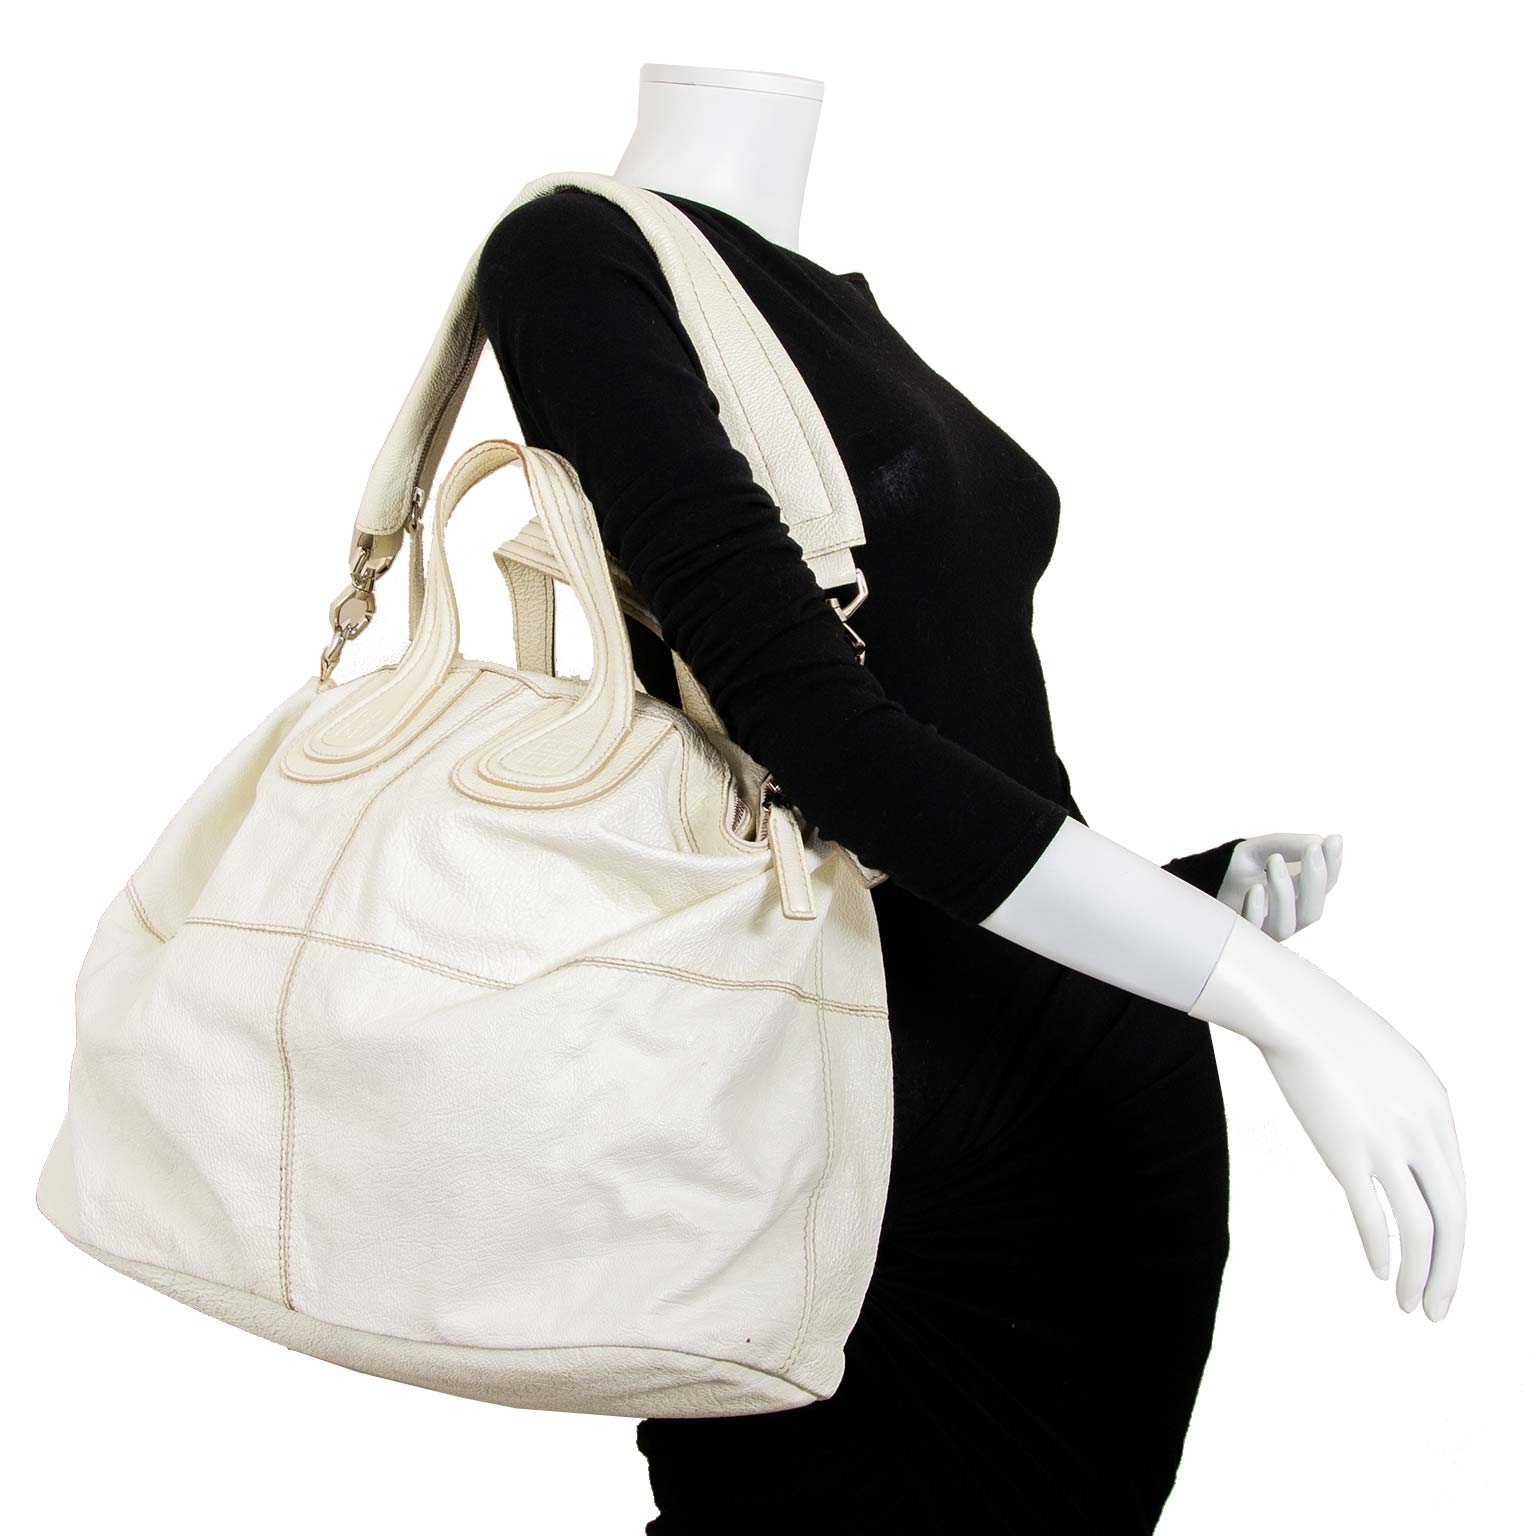 givenchy large white cream nightingale bag now for sale at labellov vintage fashion webshop belgium